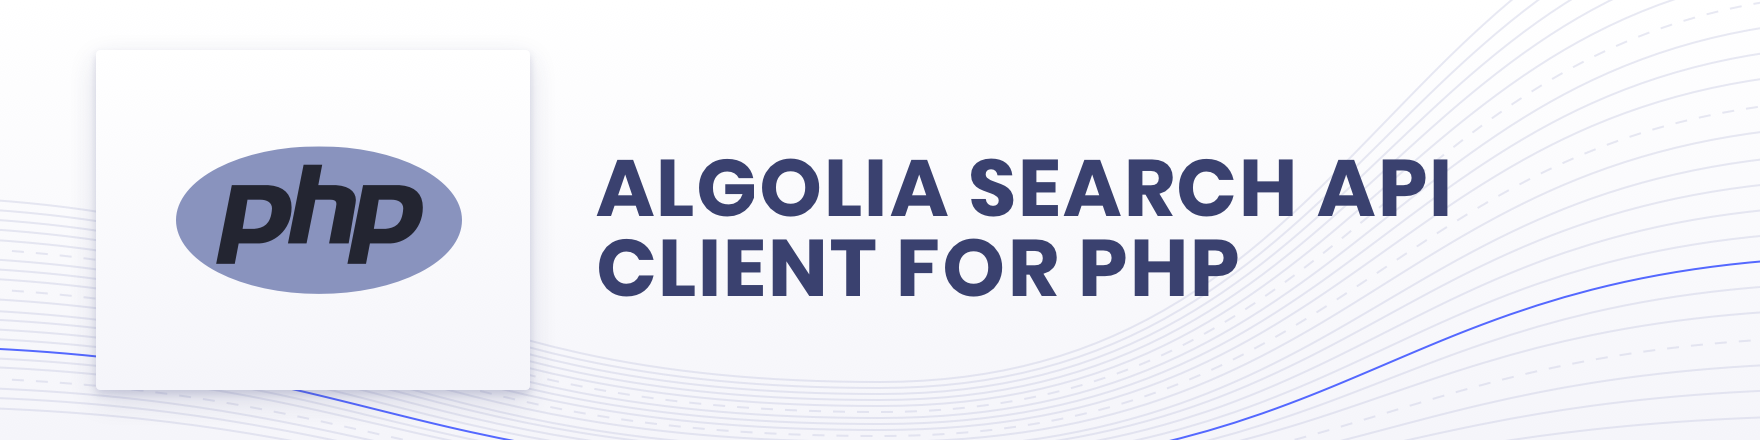 Algolia for PHP